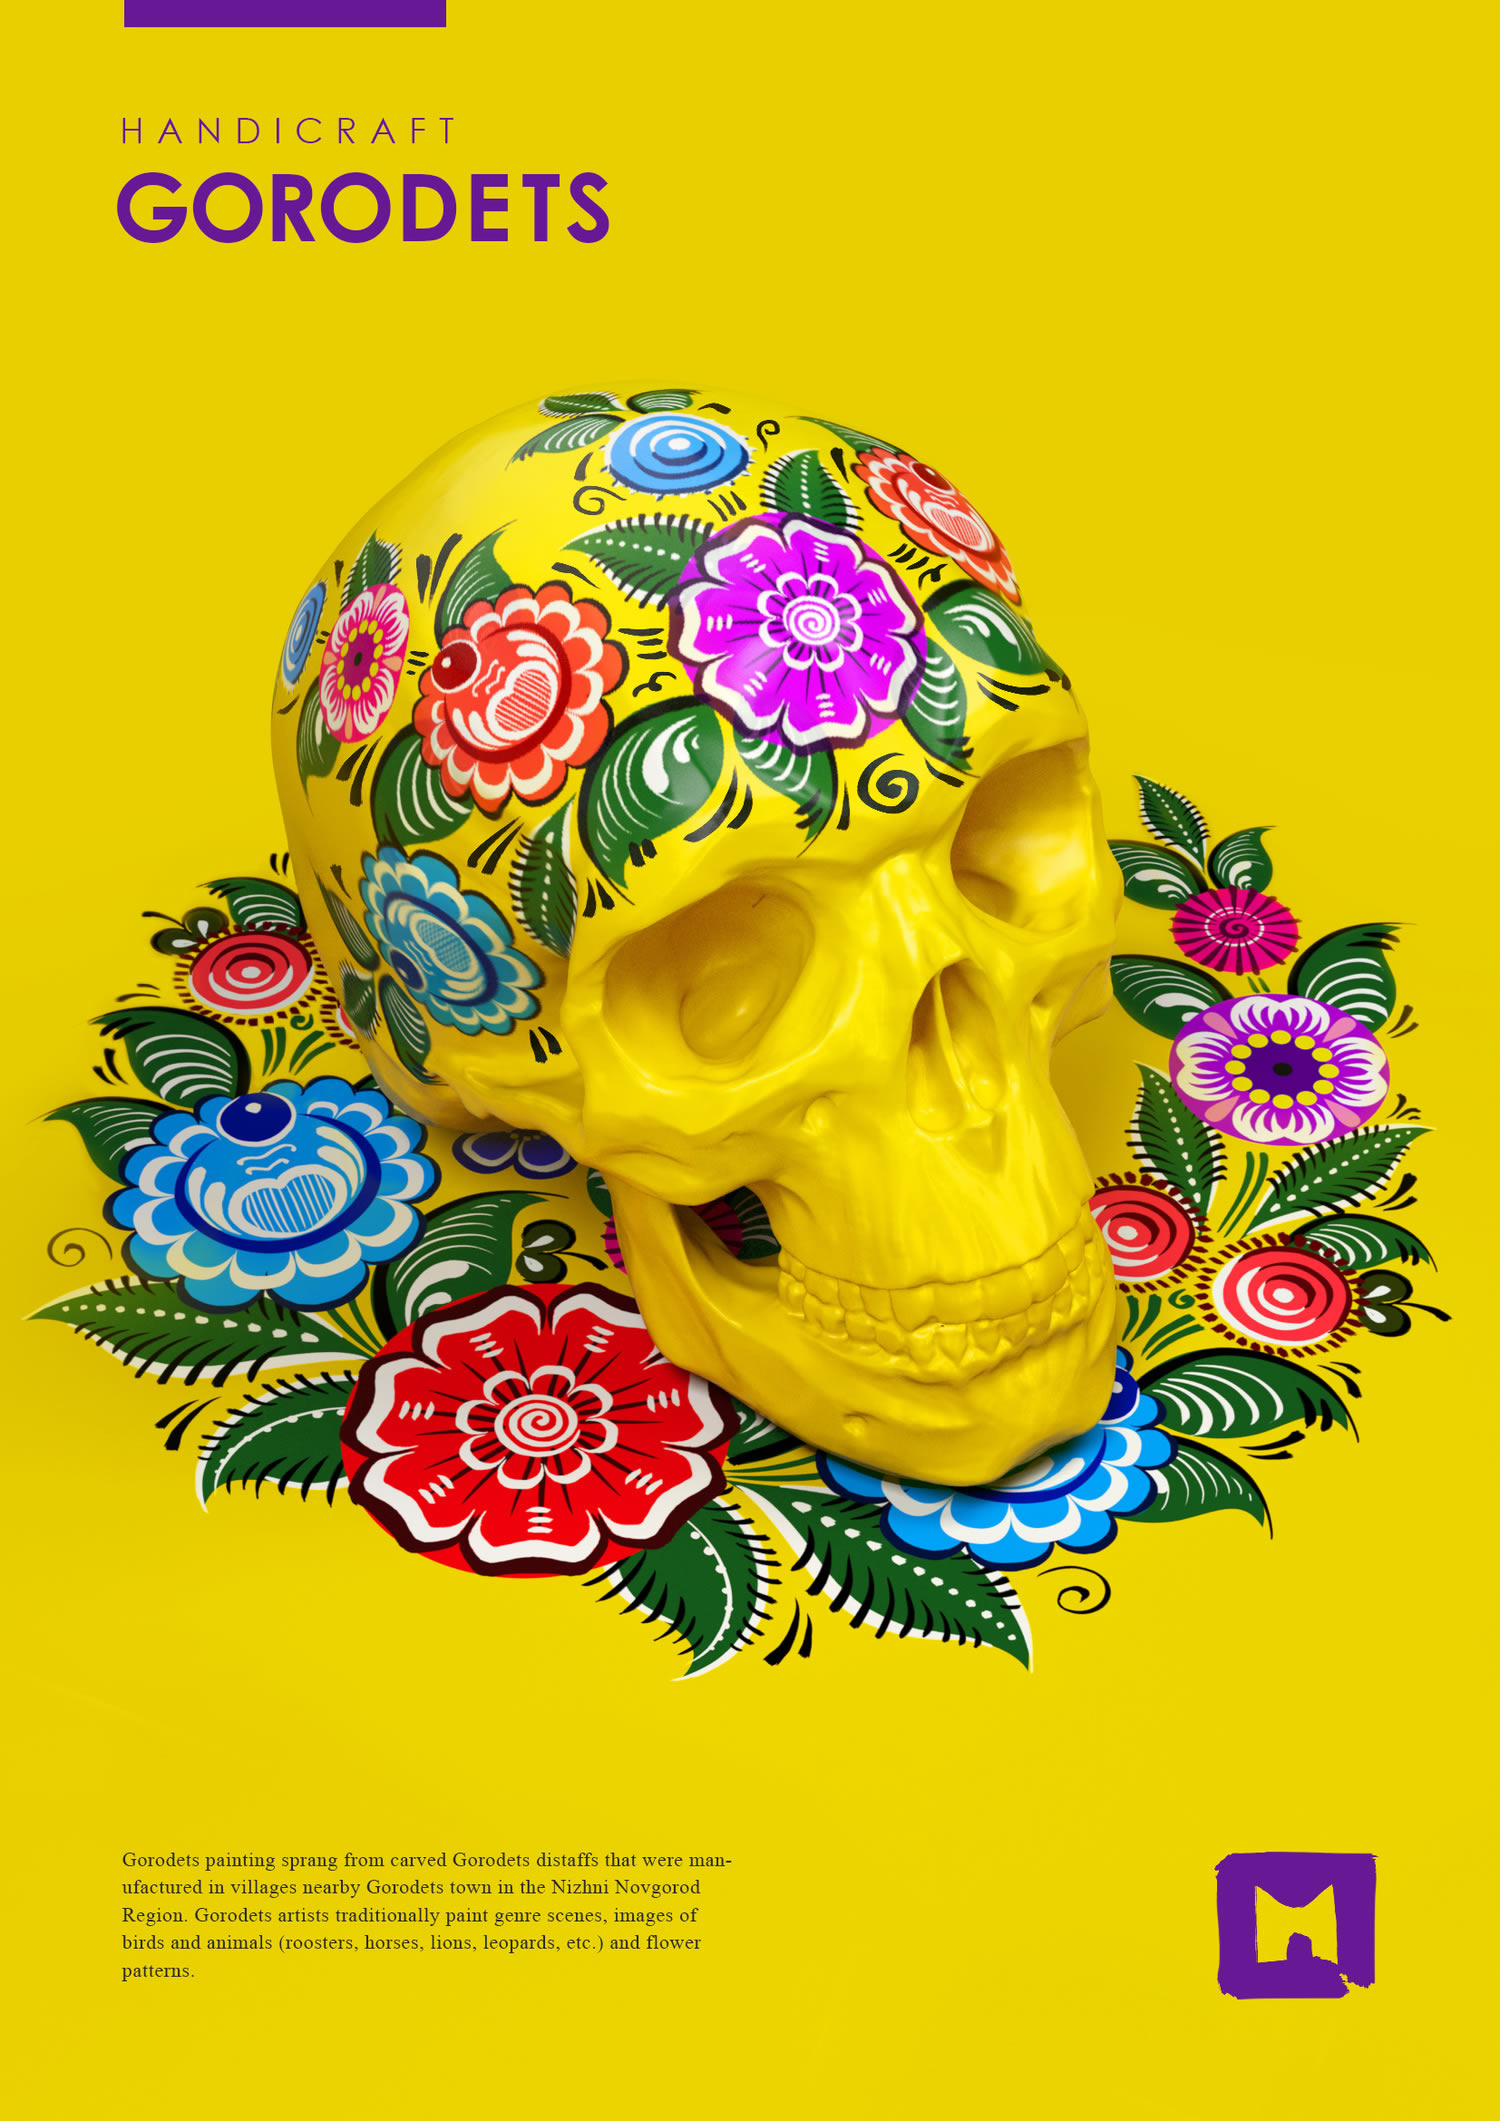 skull, yellow background, folk fusion by Aleksandra Vinogradova